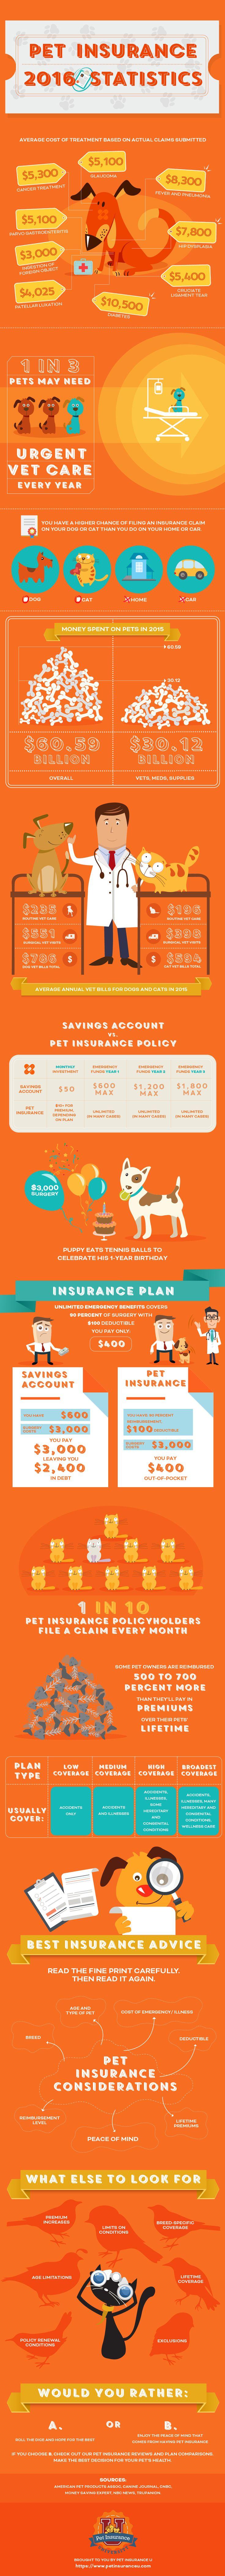 EasyInsuranceGroup.net Why Pet Health Insurance is Needed and How to Choose the Right Plan.  More Here: http://www.easyinsurancegroup.com/p/dog-cat-pet-insurance.html